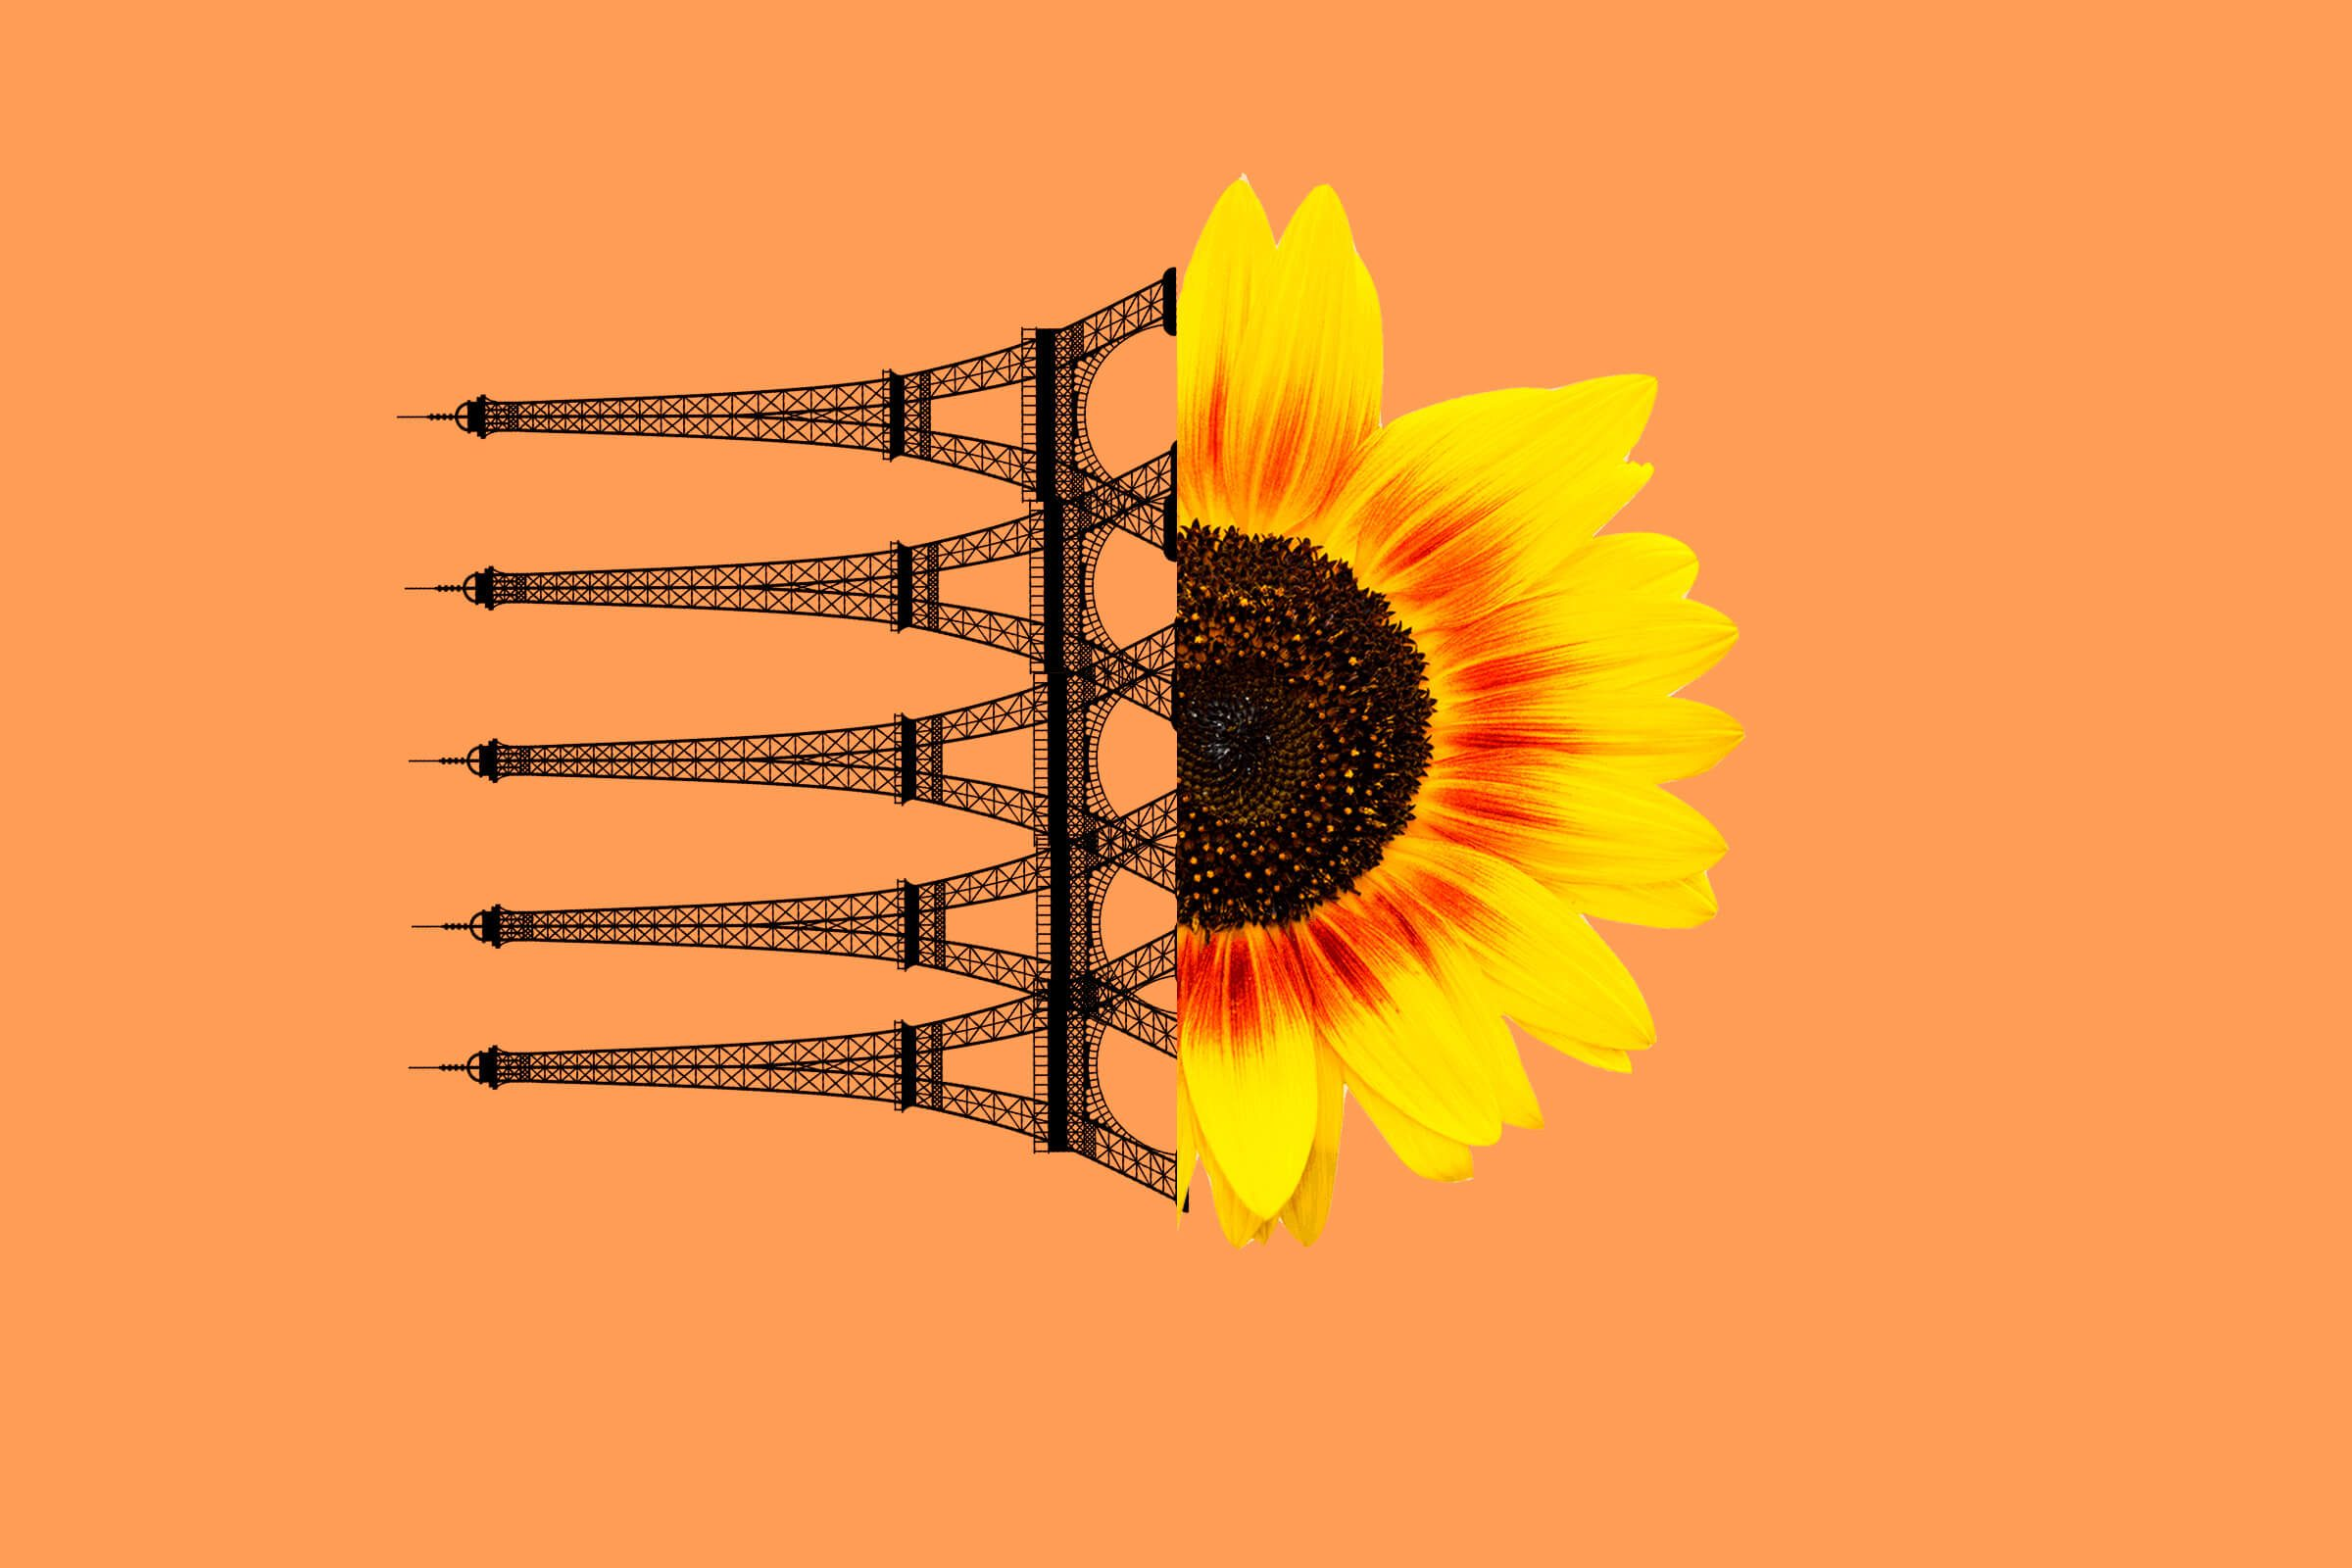 Eiffel-tower-sunflower